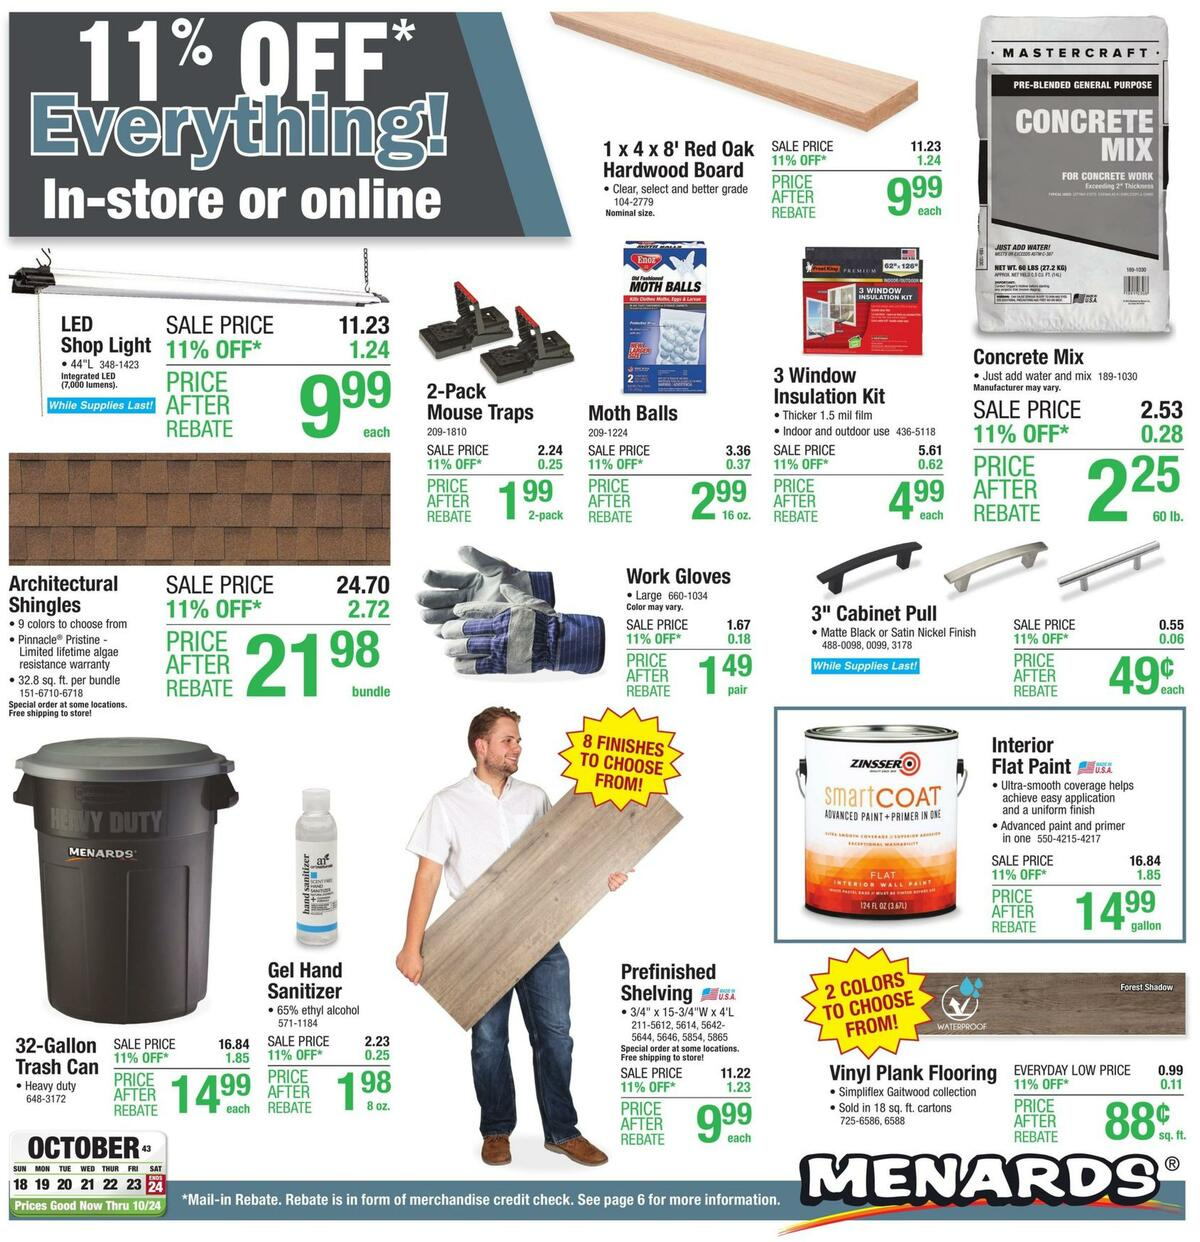 Menards Weekly Ad from October 18